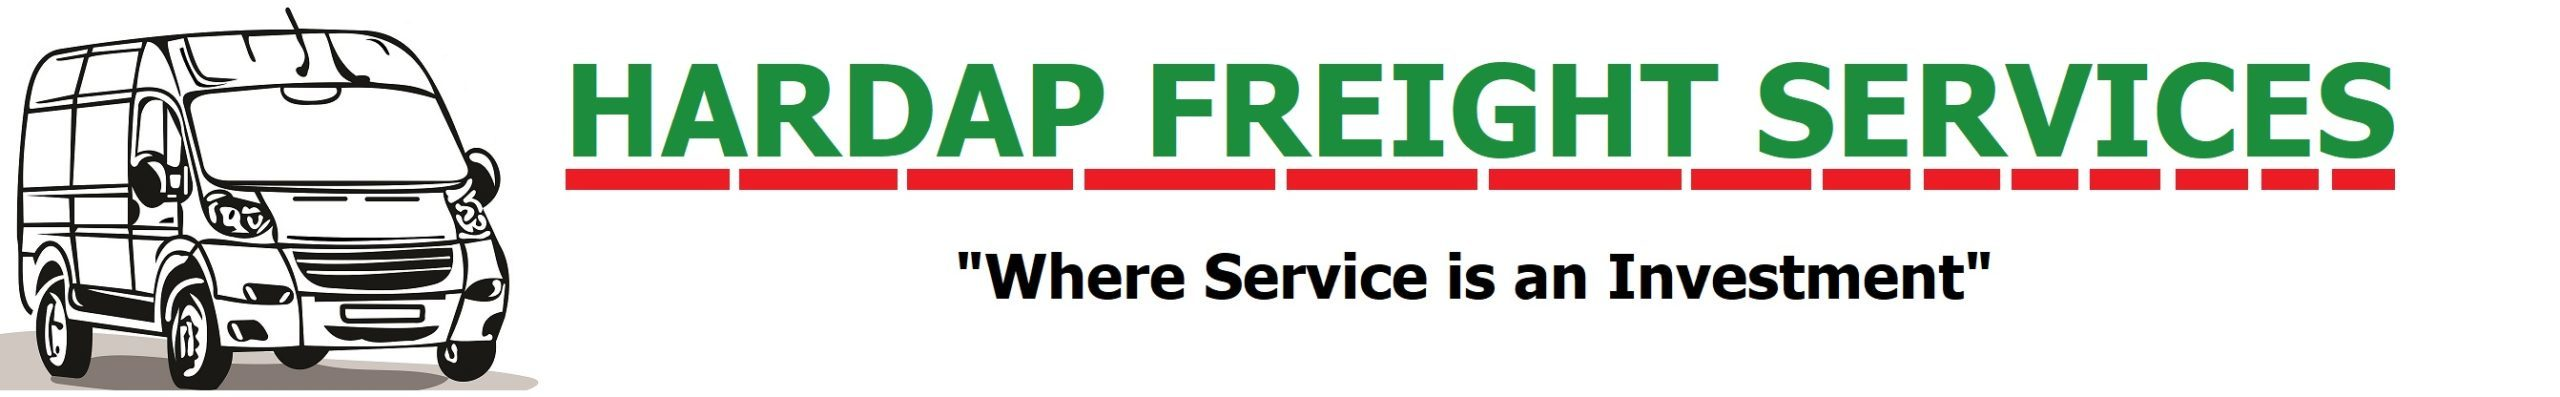 Hardap Freight Services